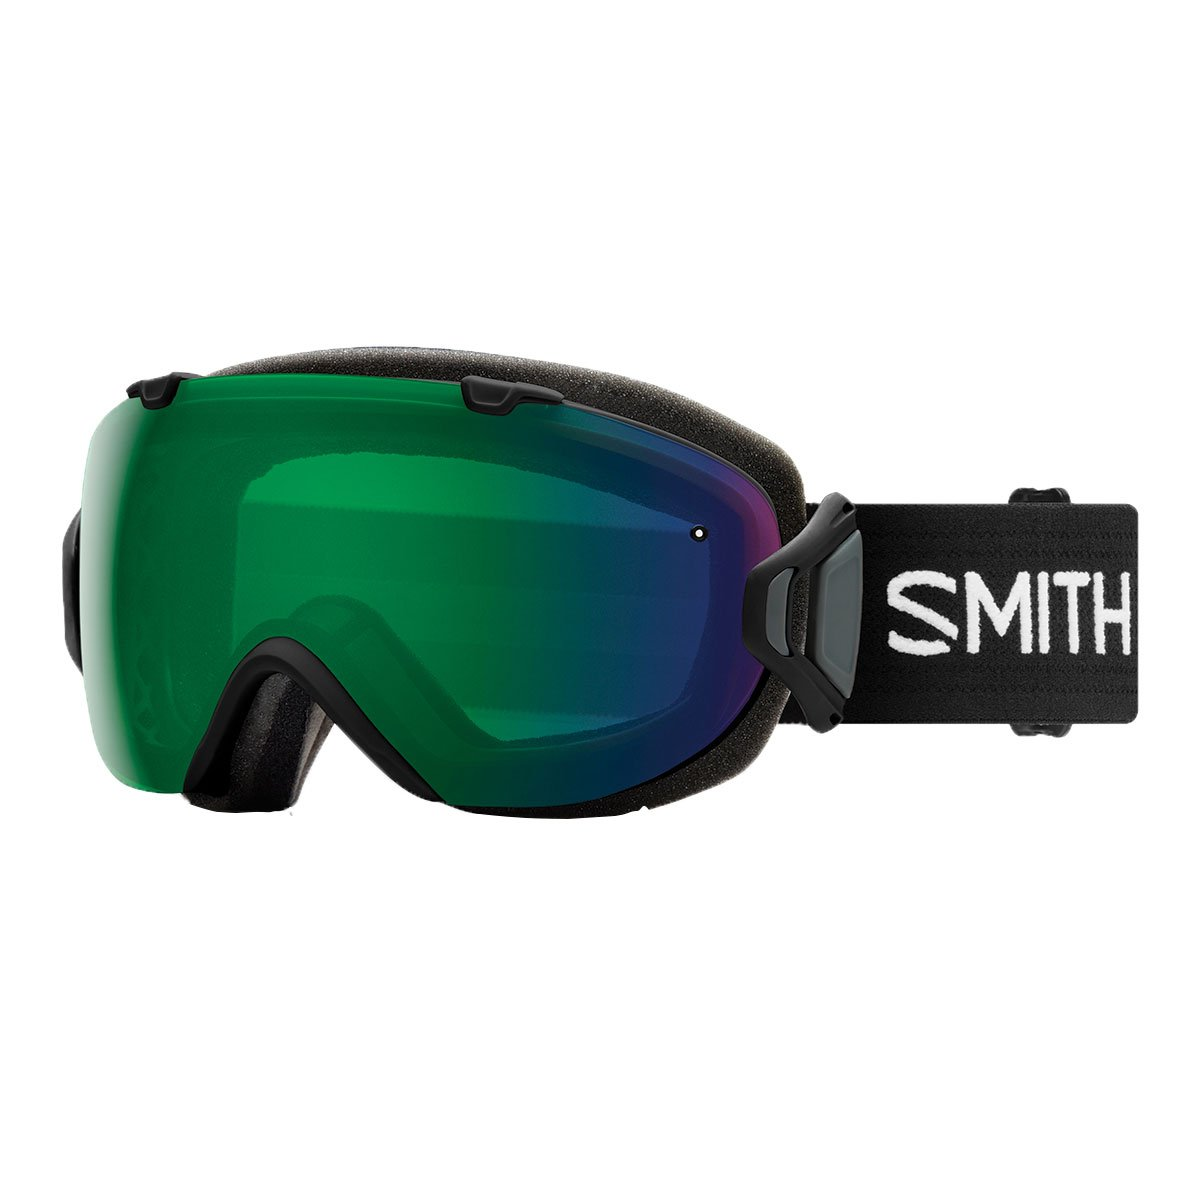 Smith Optics Womens I/OS Snowmobile Goggles Black / ChromaPop Everyday Green Mirror